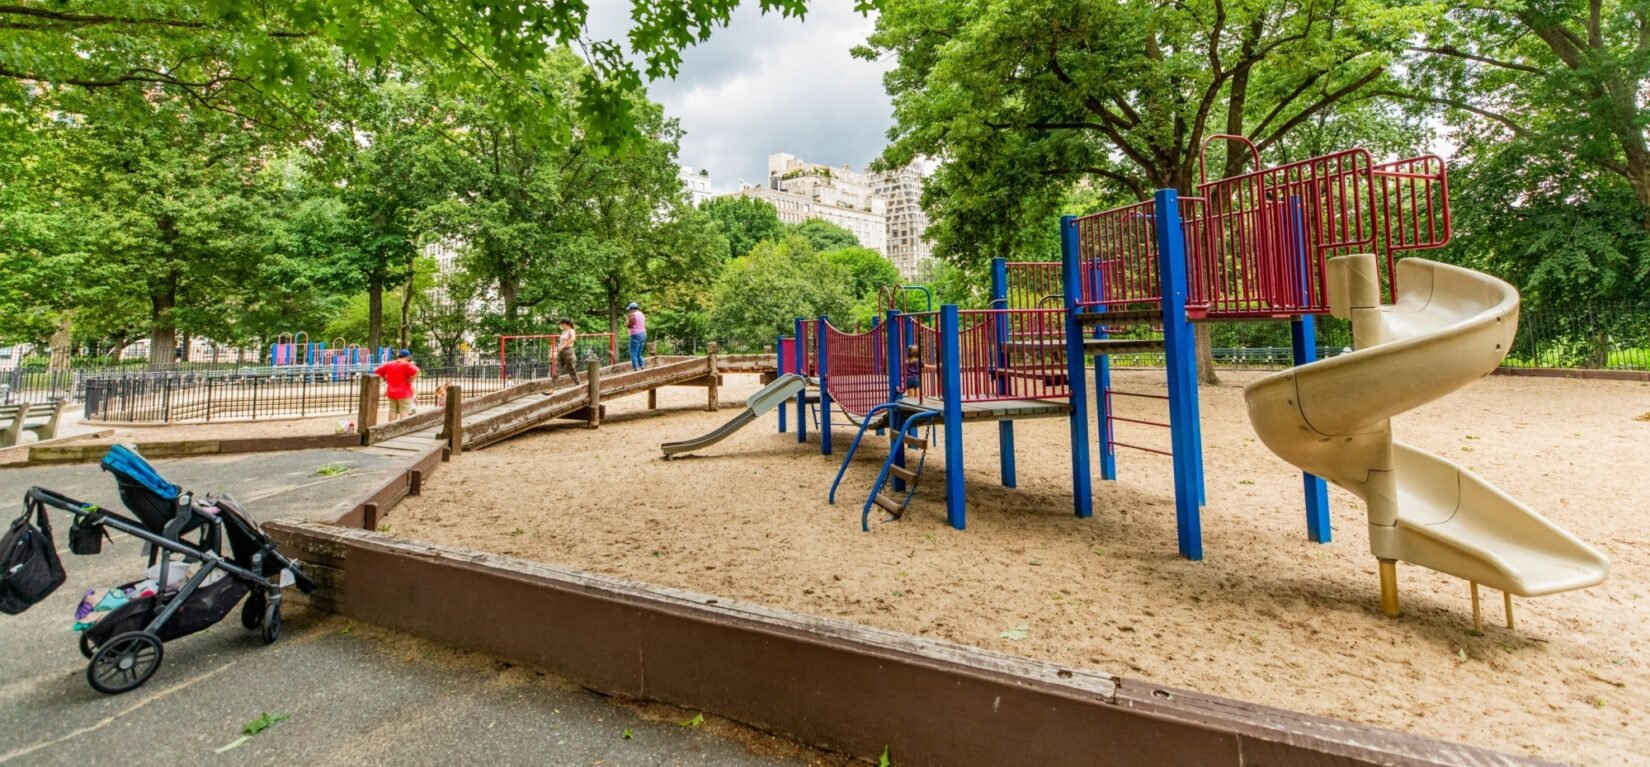 The climbing and sliding equipment in a large sandbox, seen in summer